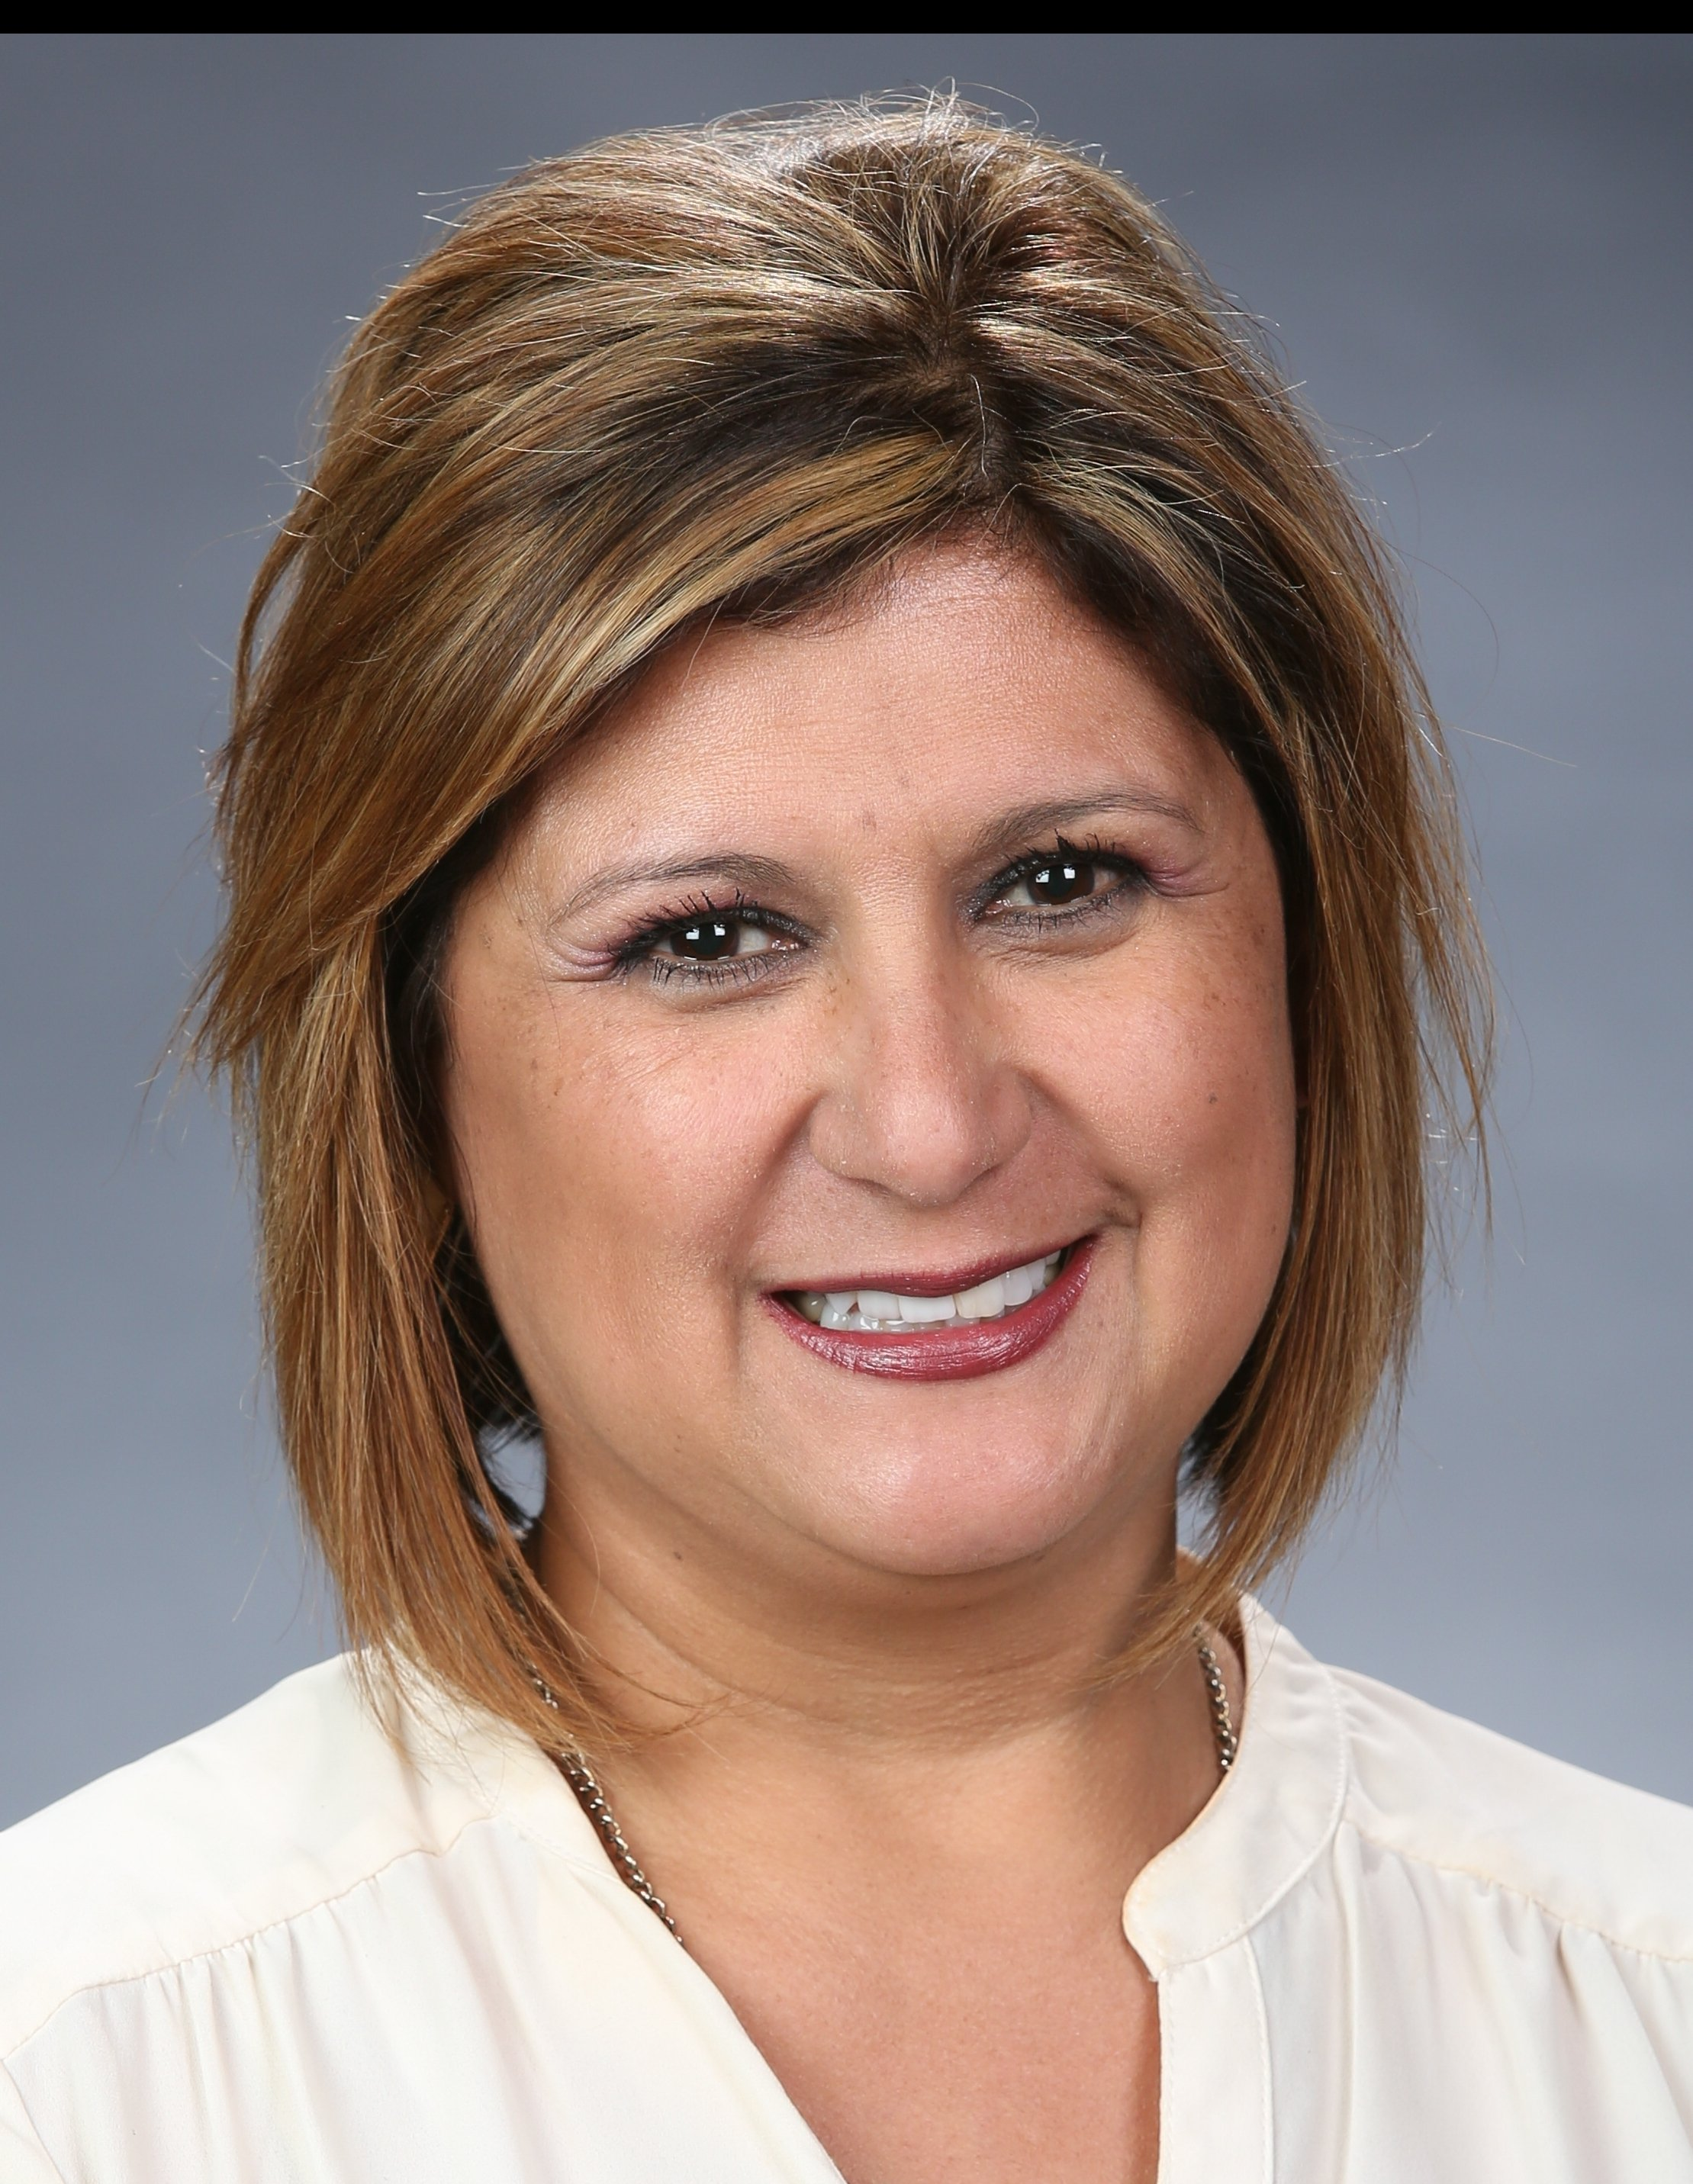 Picture of Belinda Munoz Administrative Support Coordinator